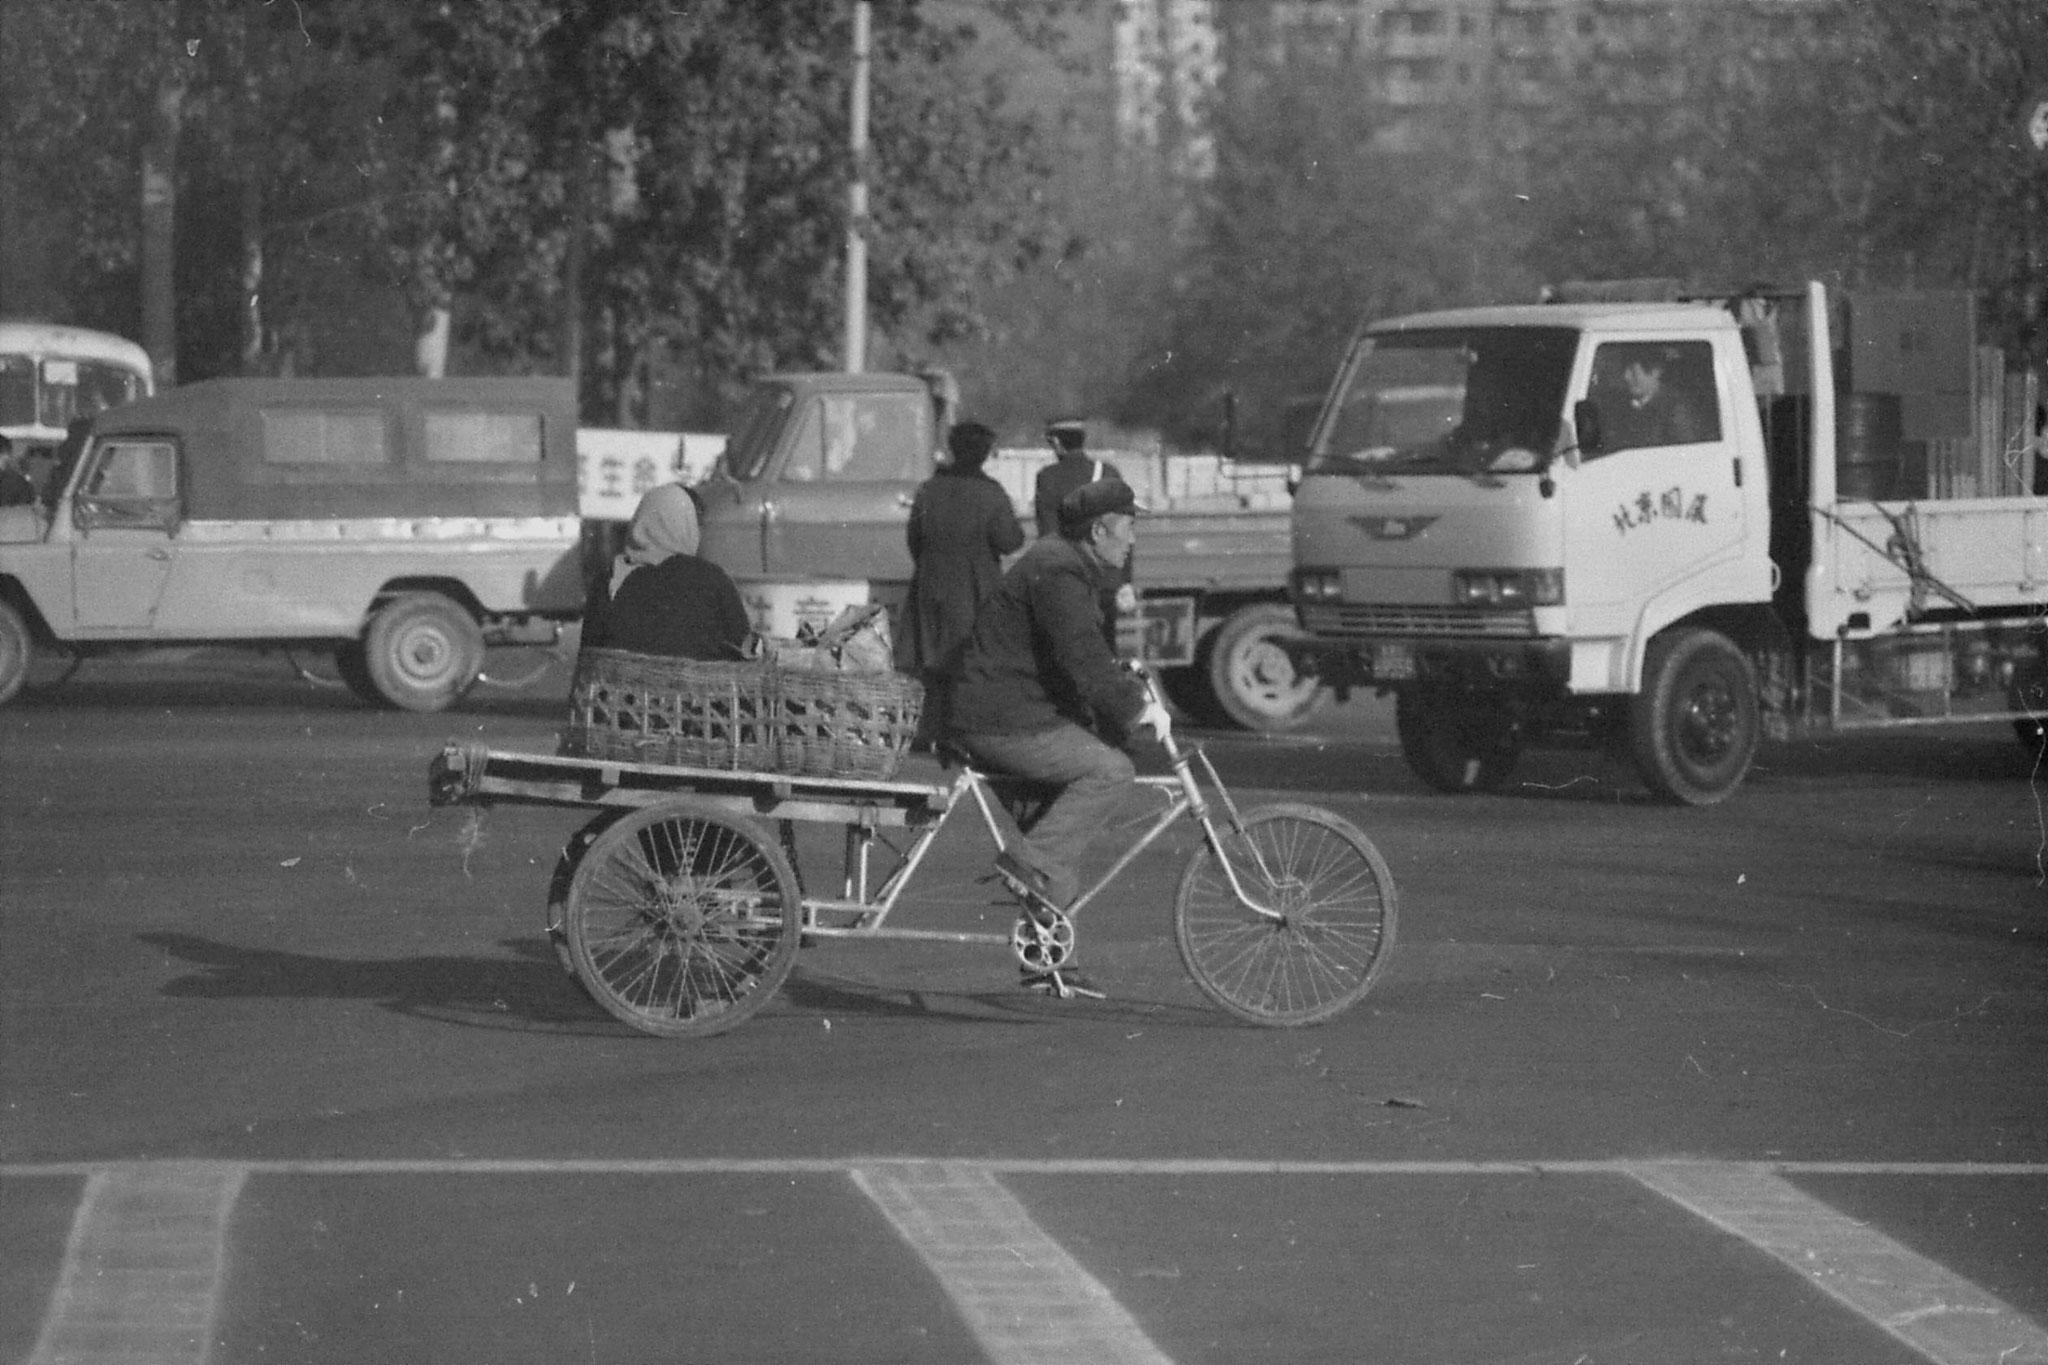 23/11/1988: 7: street scenes outside Friendship Hotel